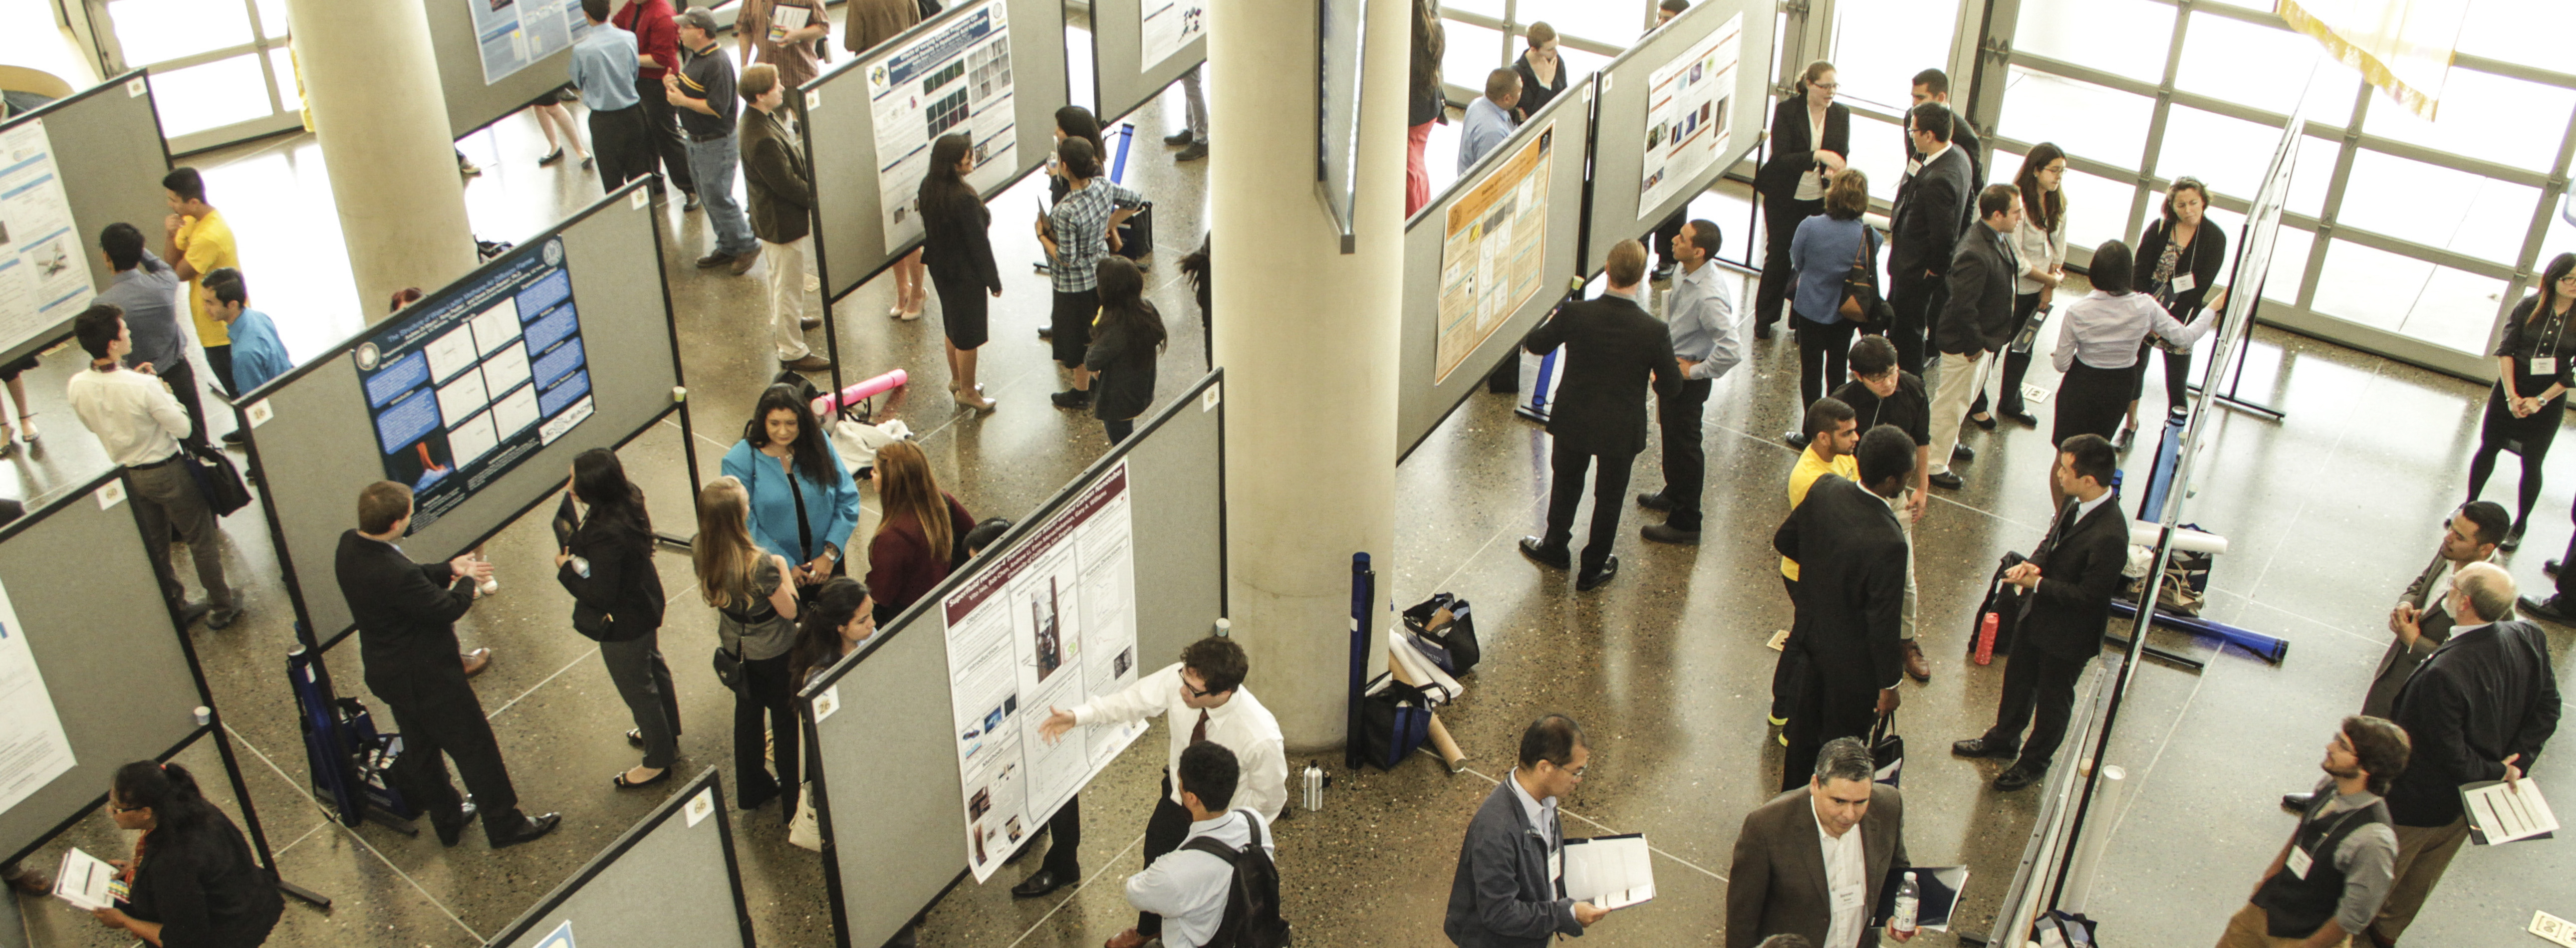 Scholars Poster Session during UROC's Annual Summer Research Symposium